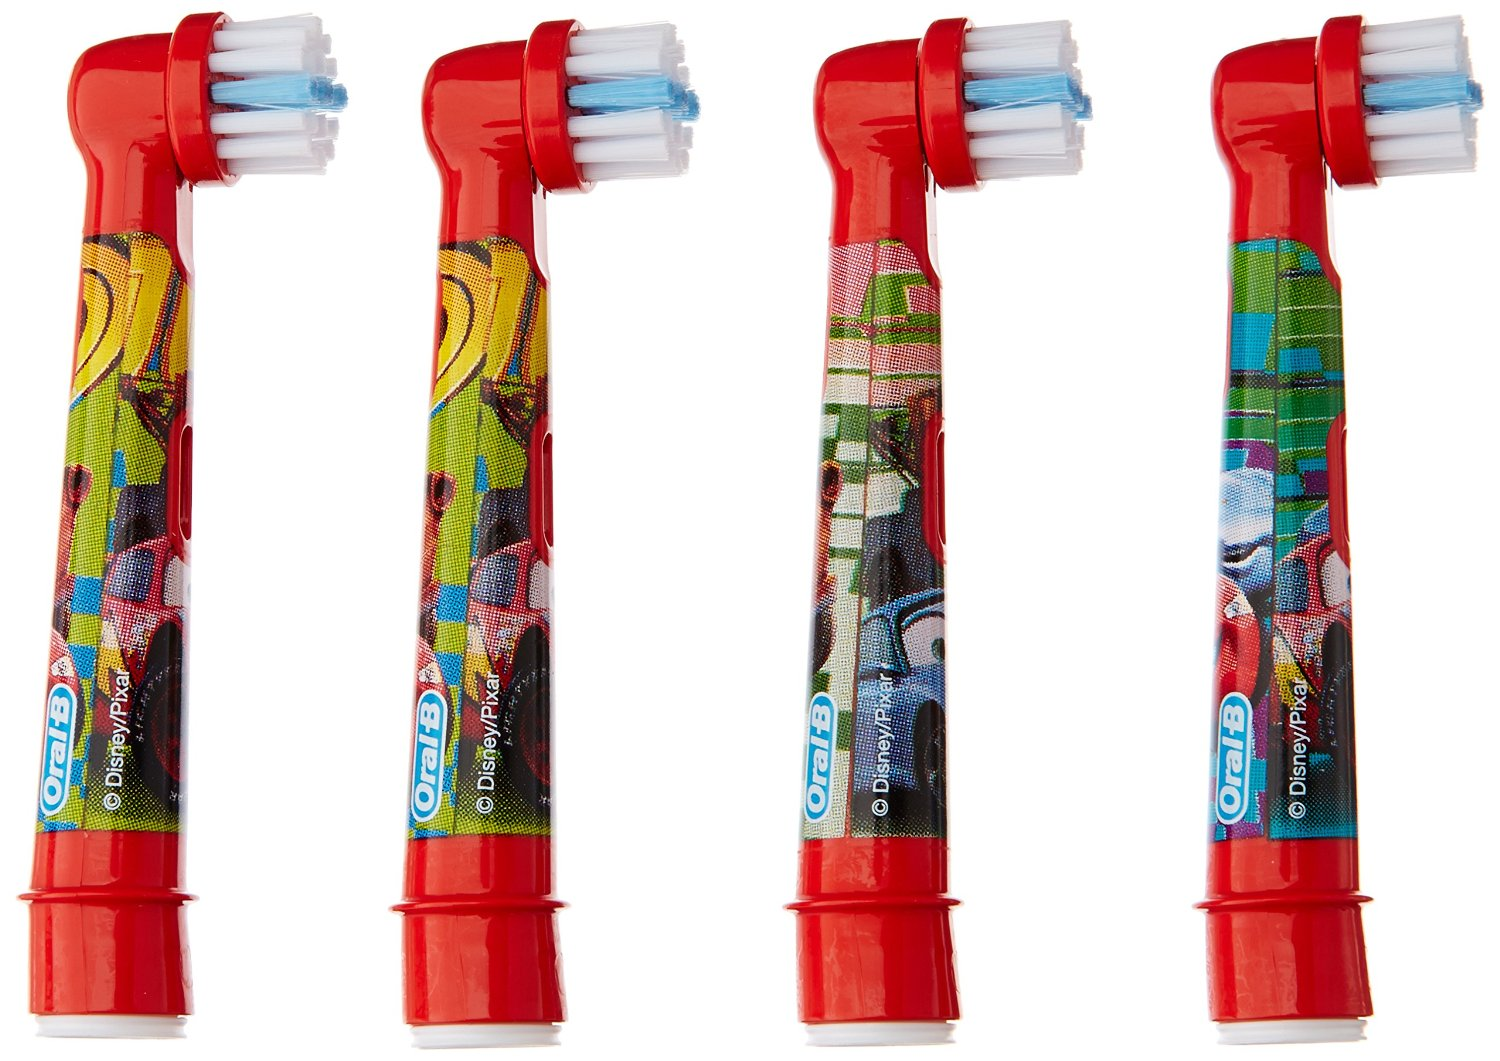 OralB Stages Power Kids Replacement Electric Toothbrush Heads...